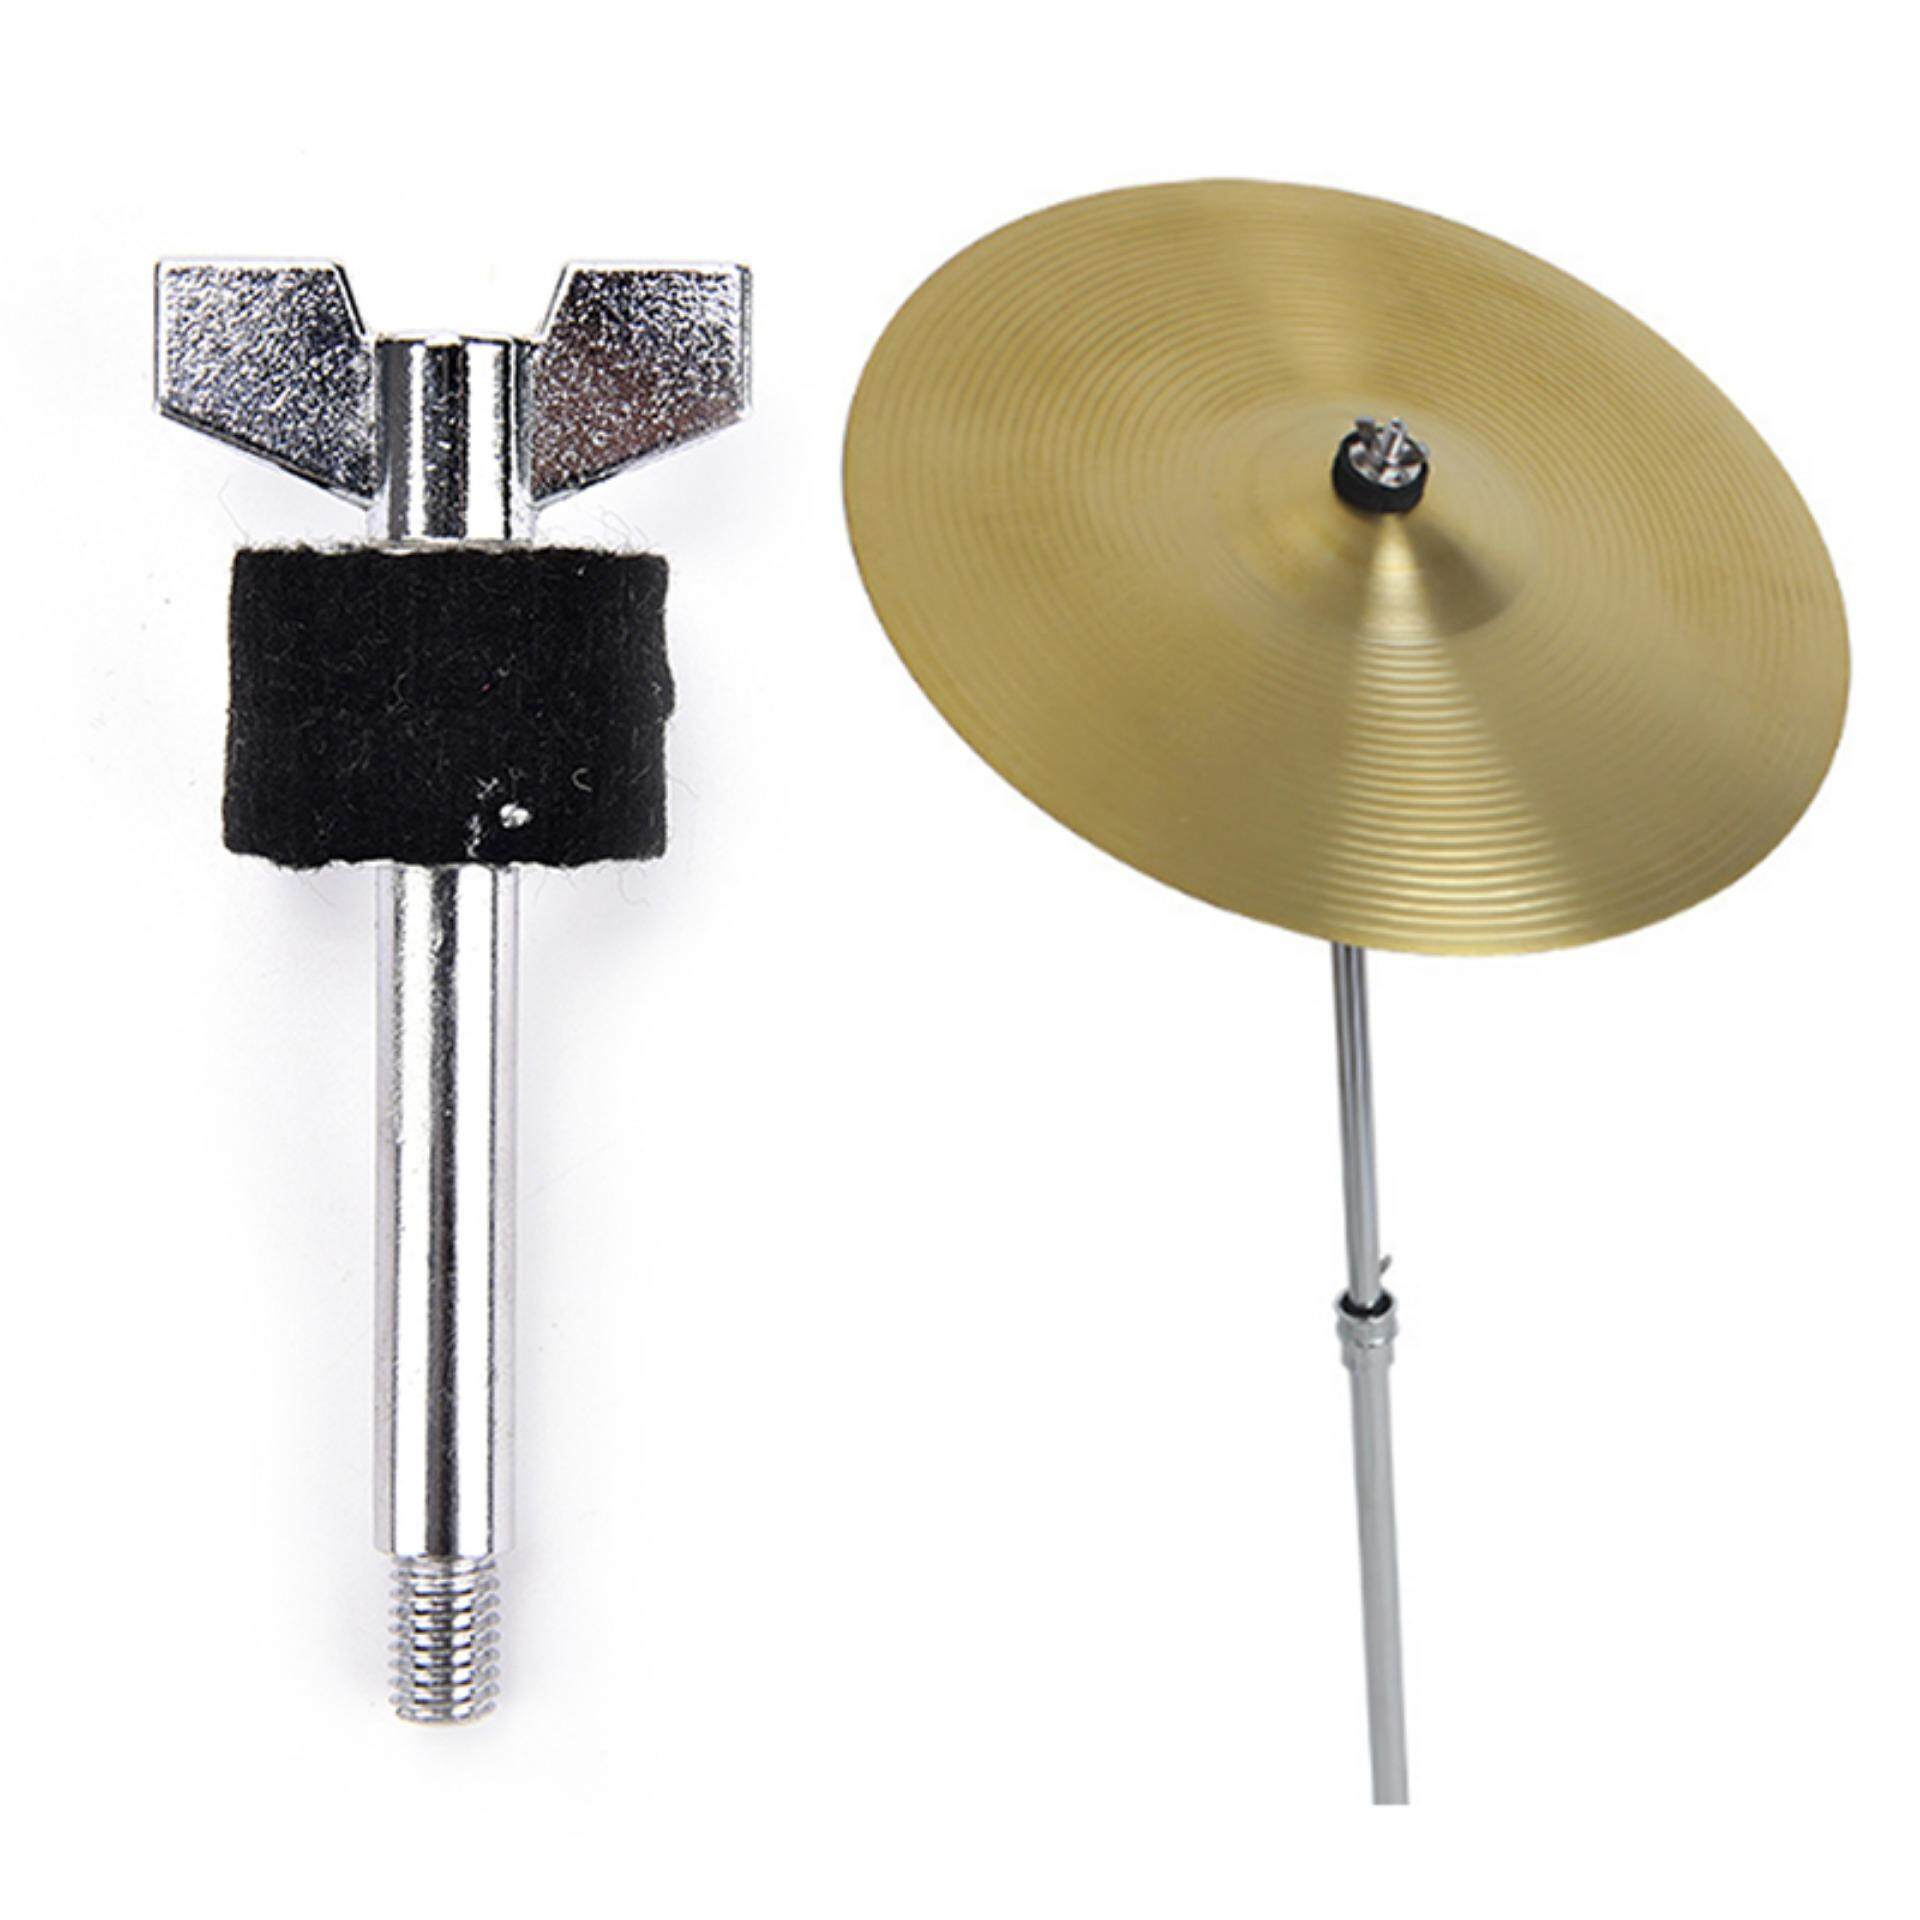 4 Inch Mini Metal Cymbal Stacker Percussion Instruments Drum Parts & Accessories - intl